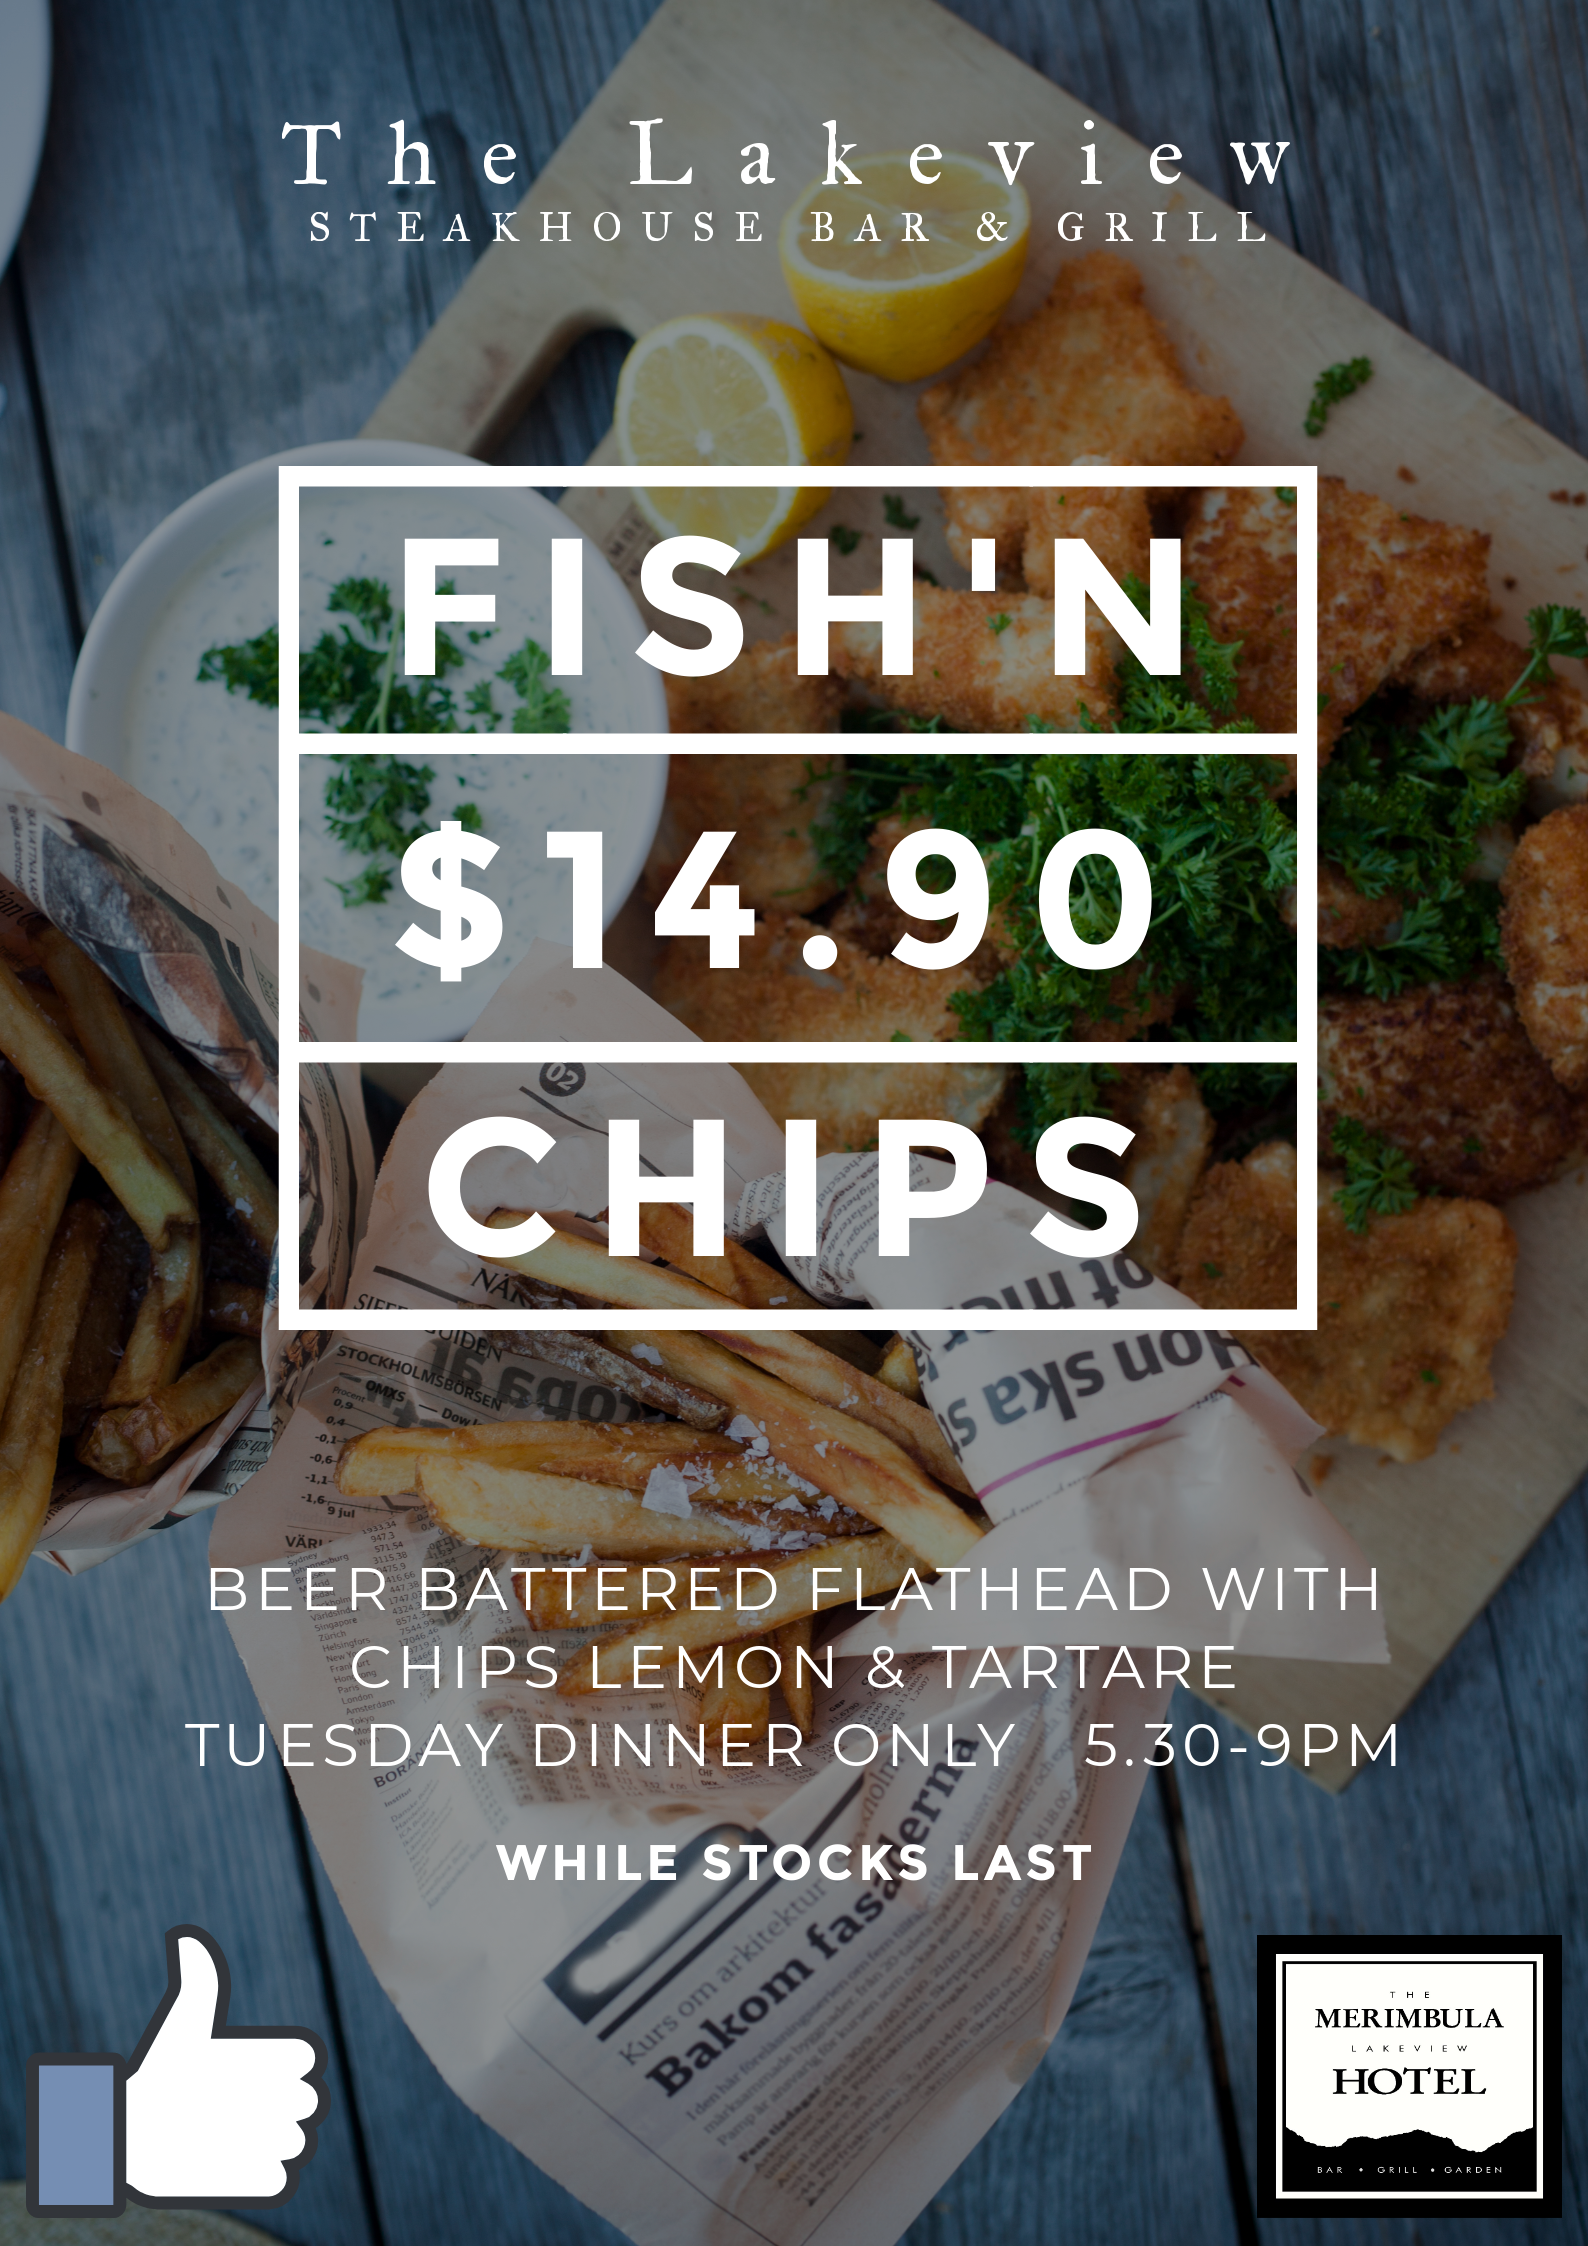 Fish n chips tuesday nights